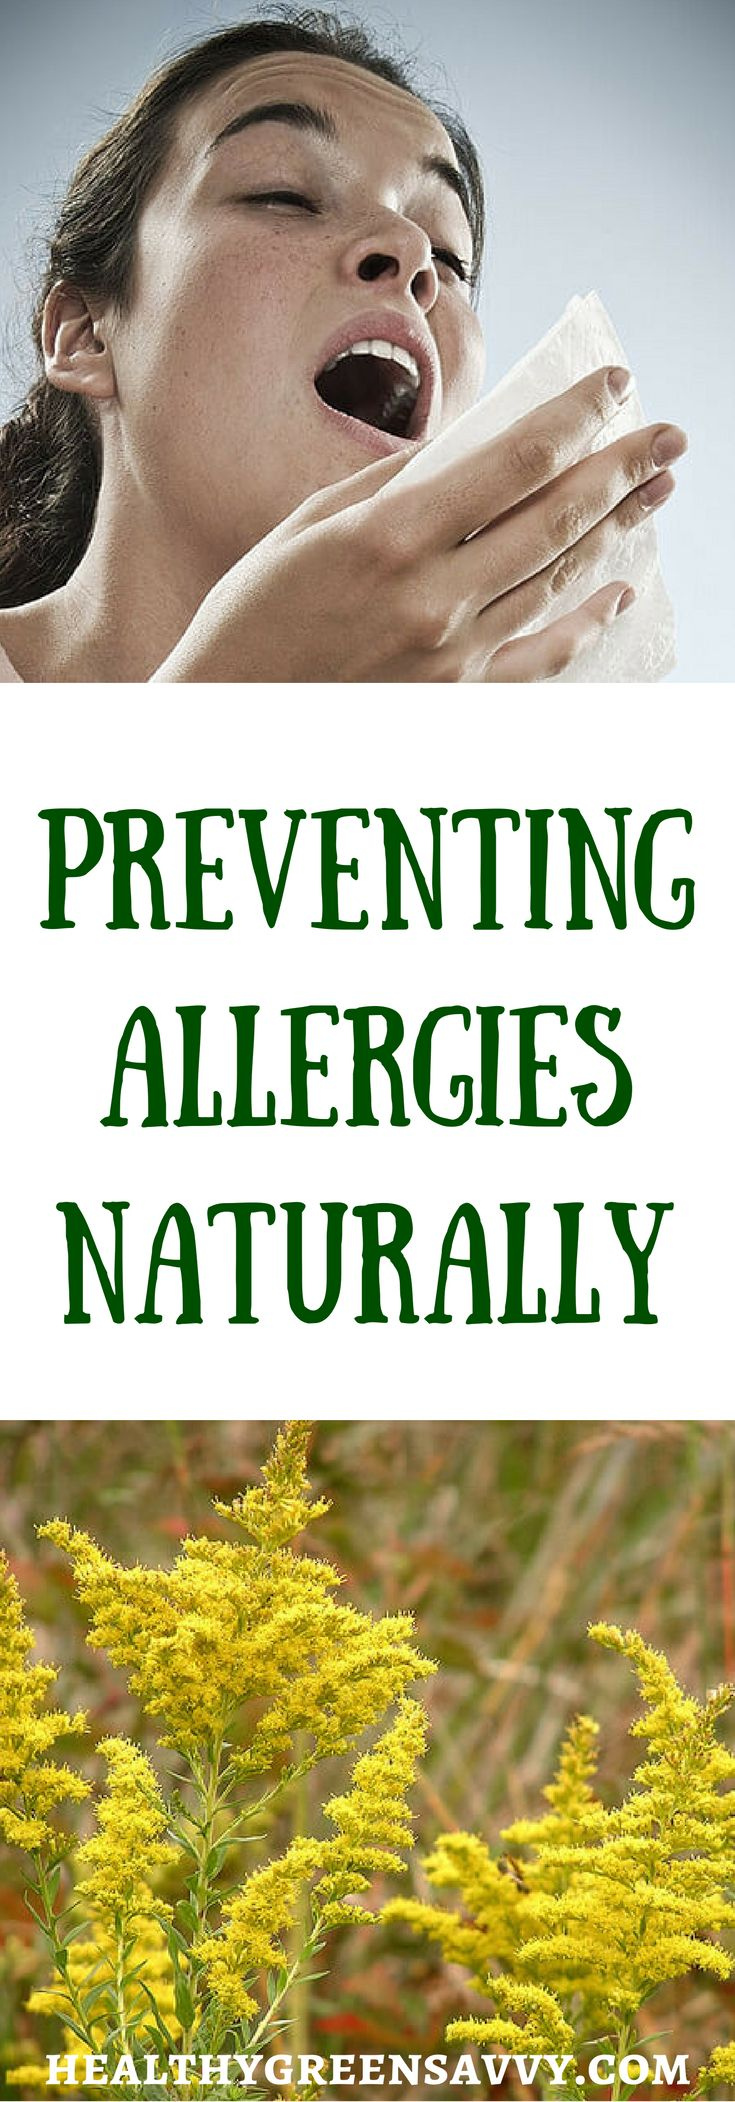 Preventing allergies naturally -- before you turn to OTC medications, try these gentle herbal remedies for seasonal allergies. | natural remedies | alternative medicine | home remedies |